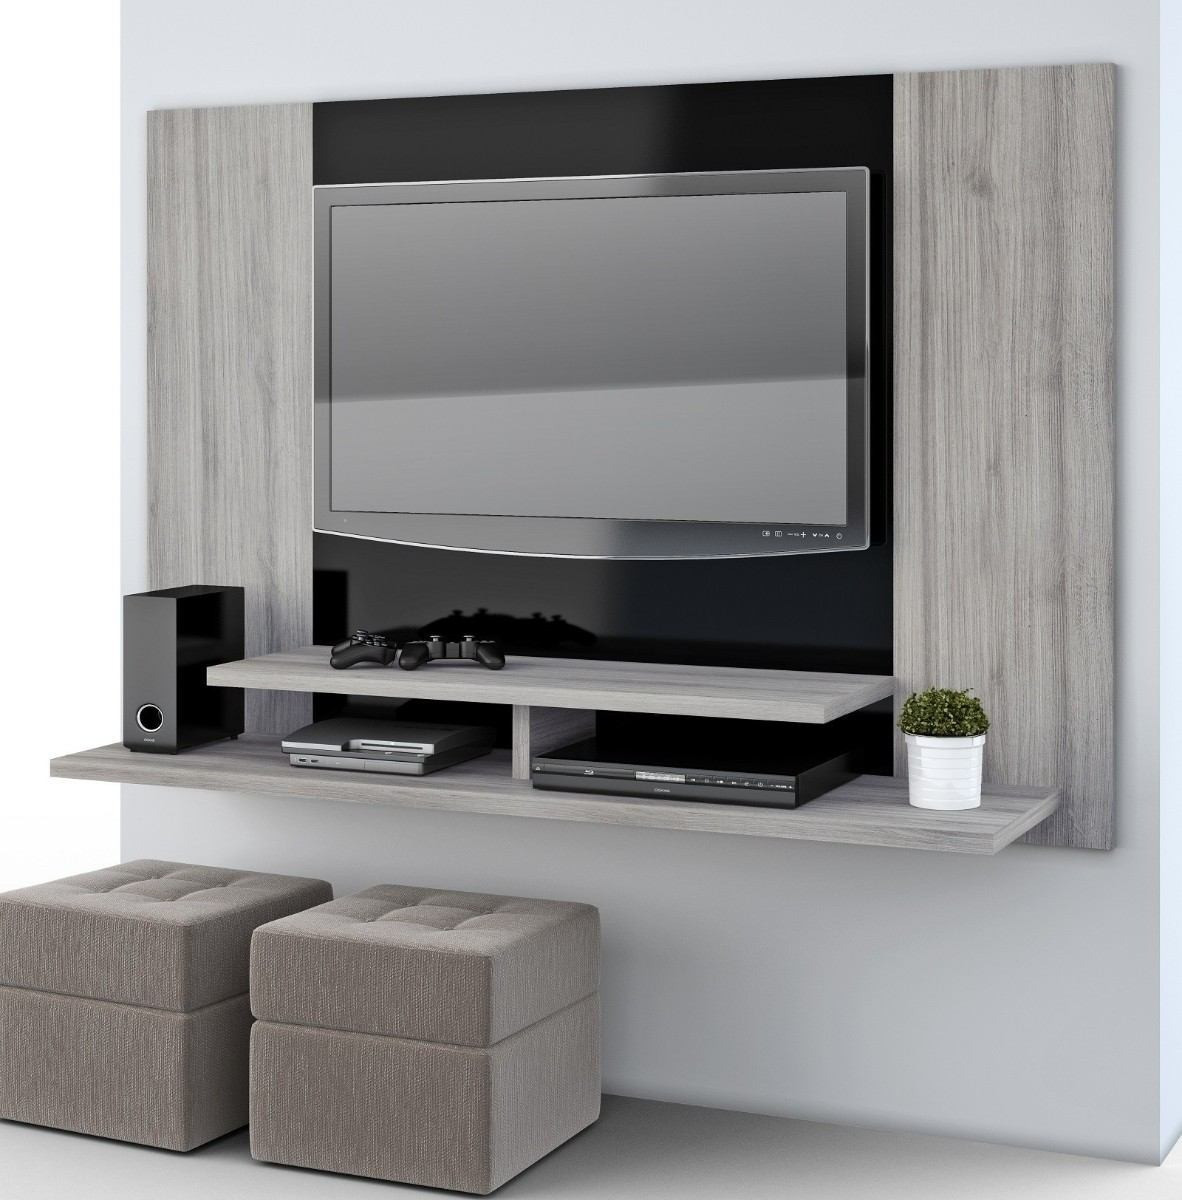 Muebles Para Tv Modernos Innovador Mueble Flotante Para Tv Moderno Ref Manhatan $ 430 000 Of Muebles Para Tv Modernos Contemporáneo 1000 Ideas About Tv Rack On Pinterest